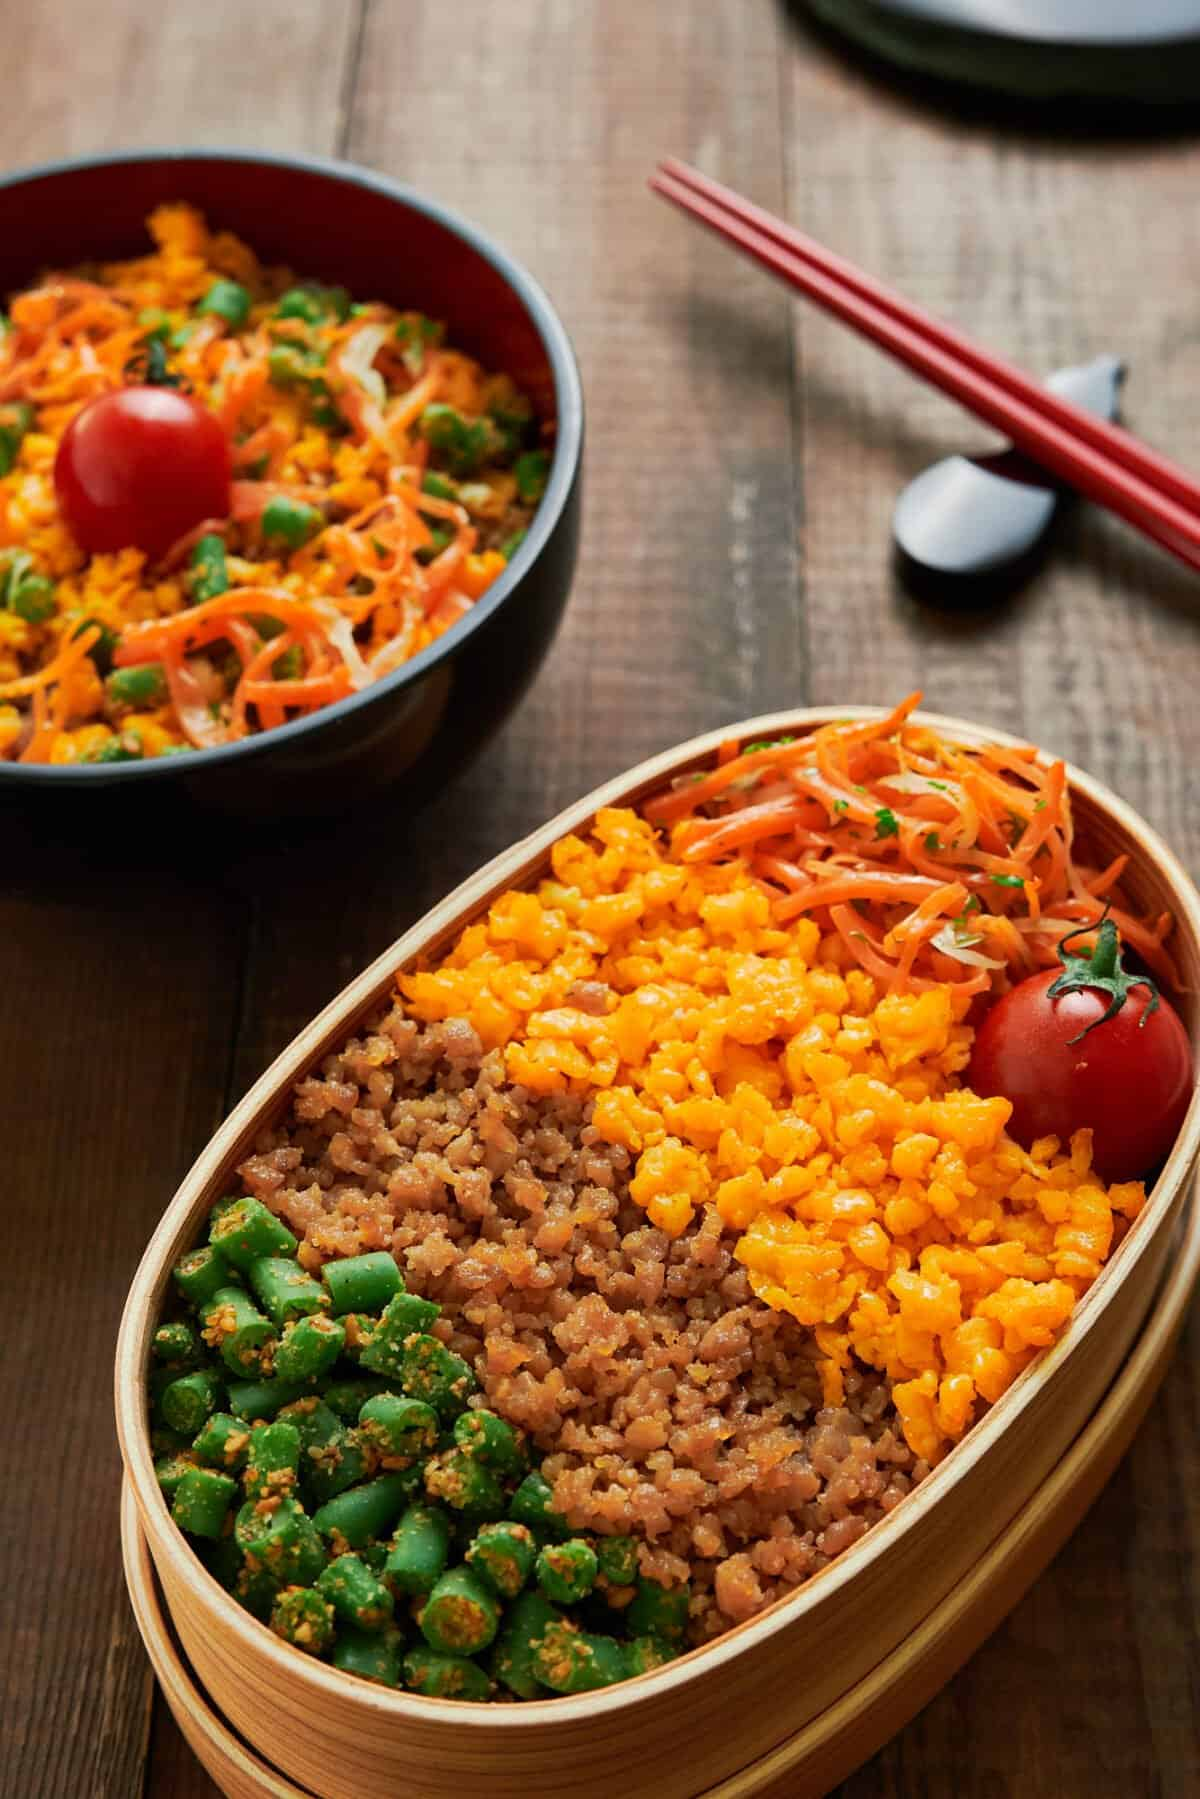 With a rainbow of chicken, eggs, and veggies over rice, this easy delicious Soboro Bento comes together for under $3 per serving from ingedients you probably have in your kitchen.